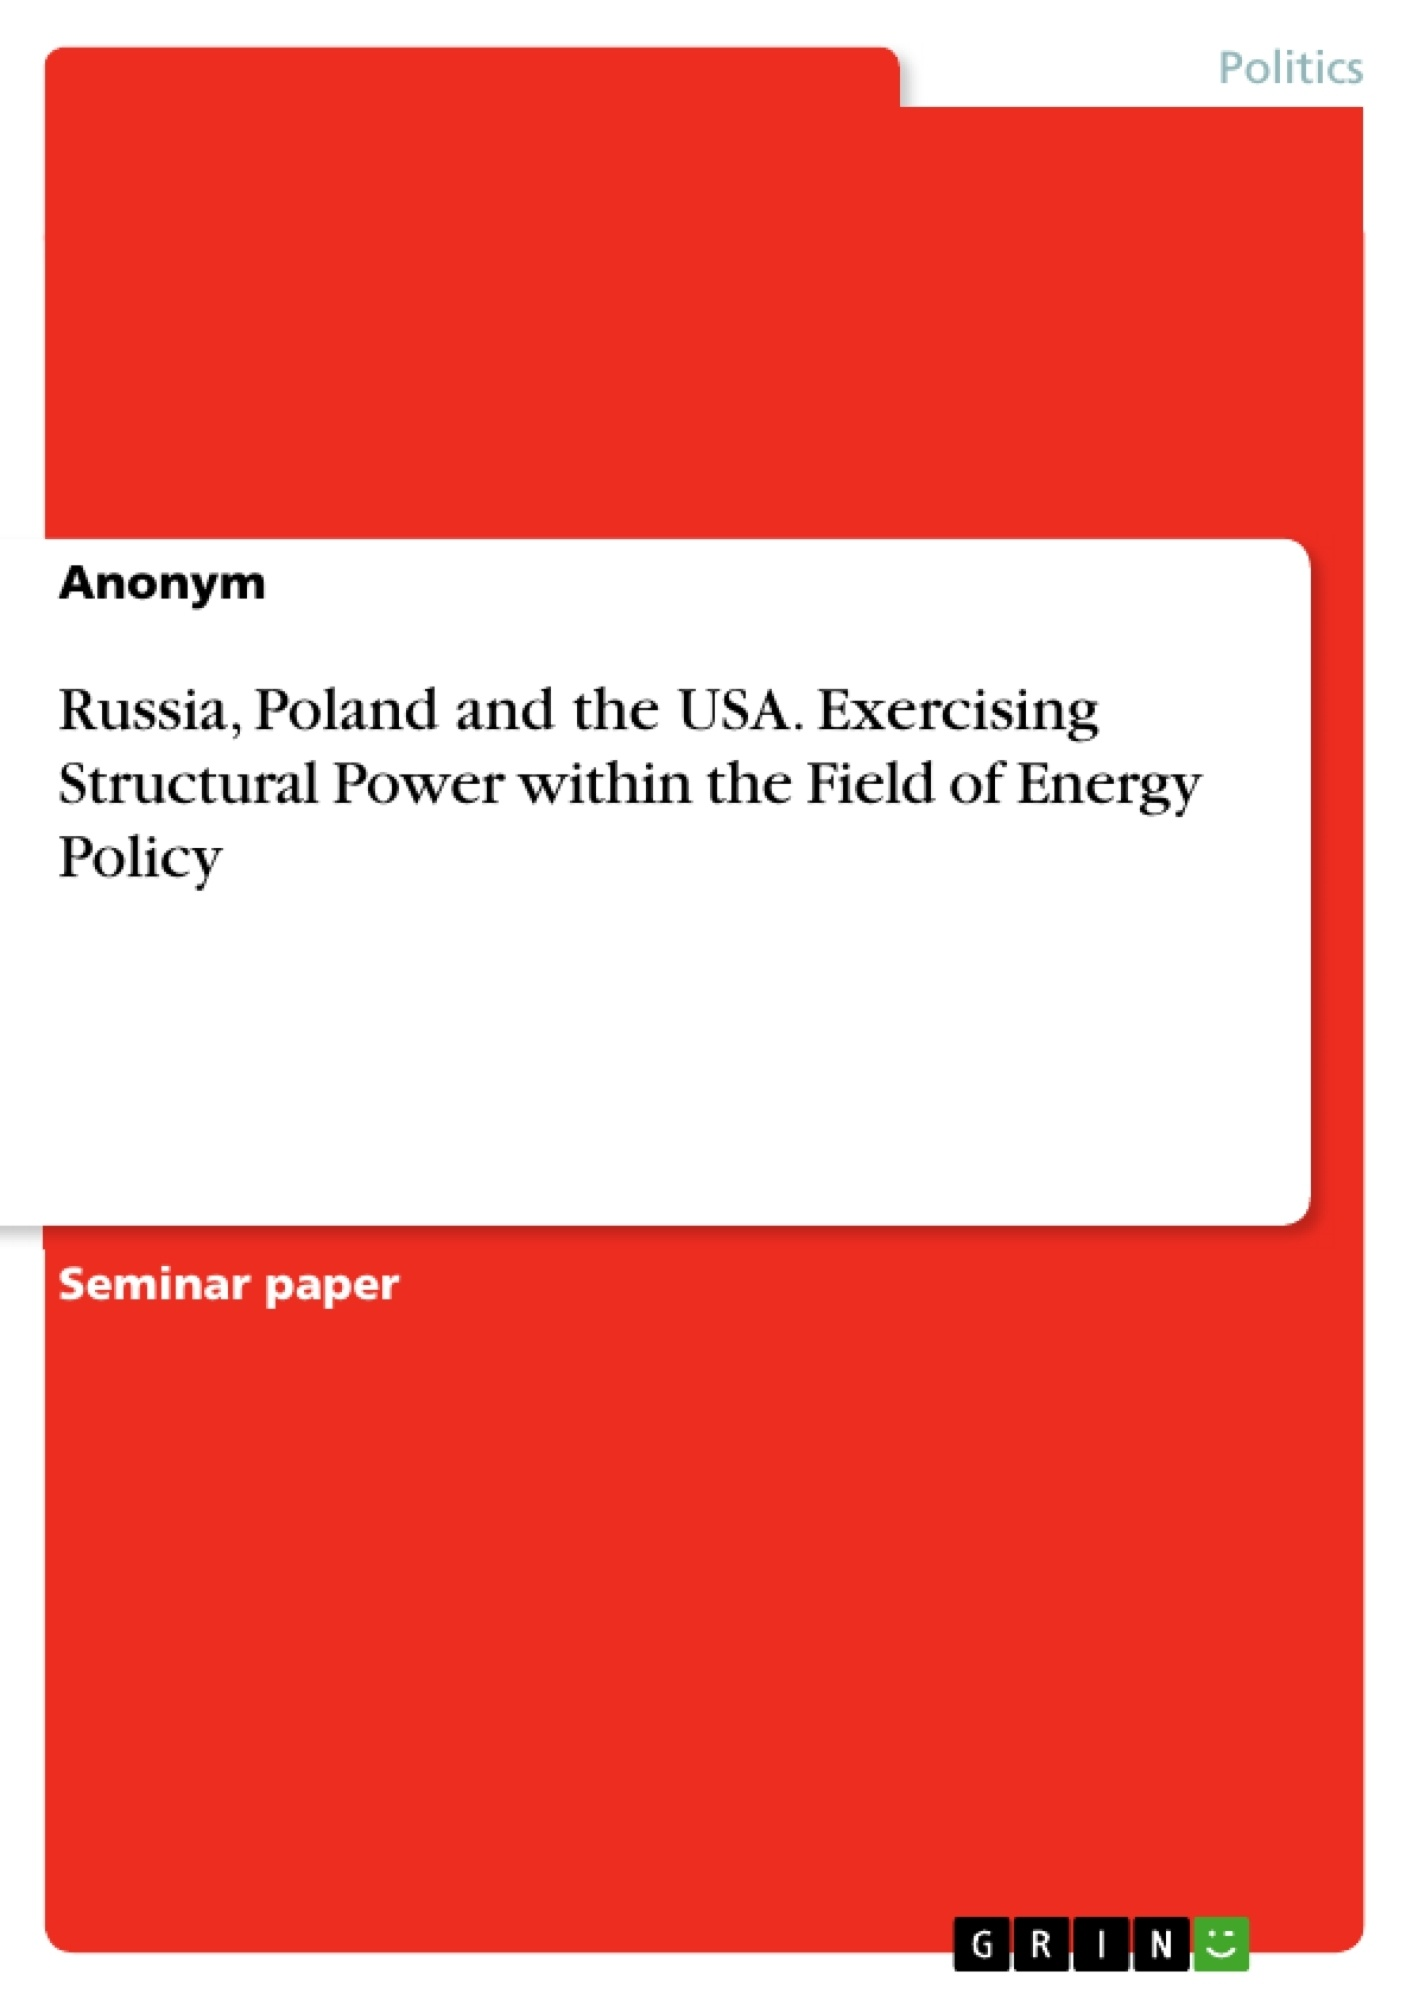 Title: Russia, Poland and the USA. Exercising Structural Power within the Field of Energy Policy